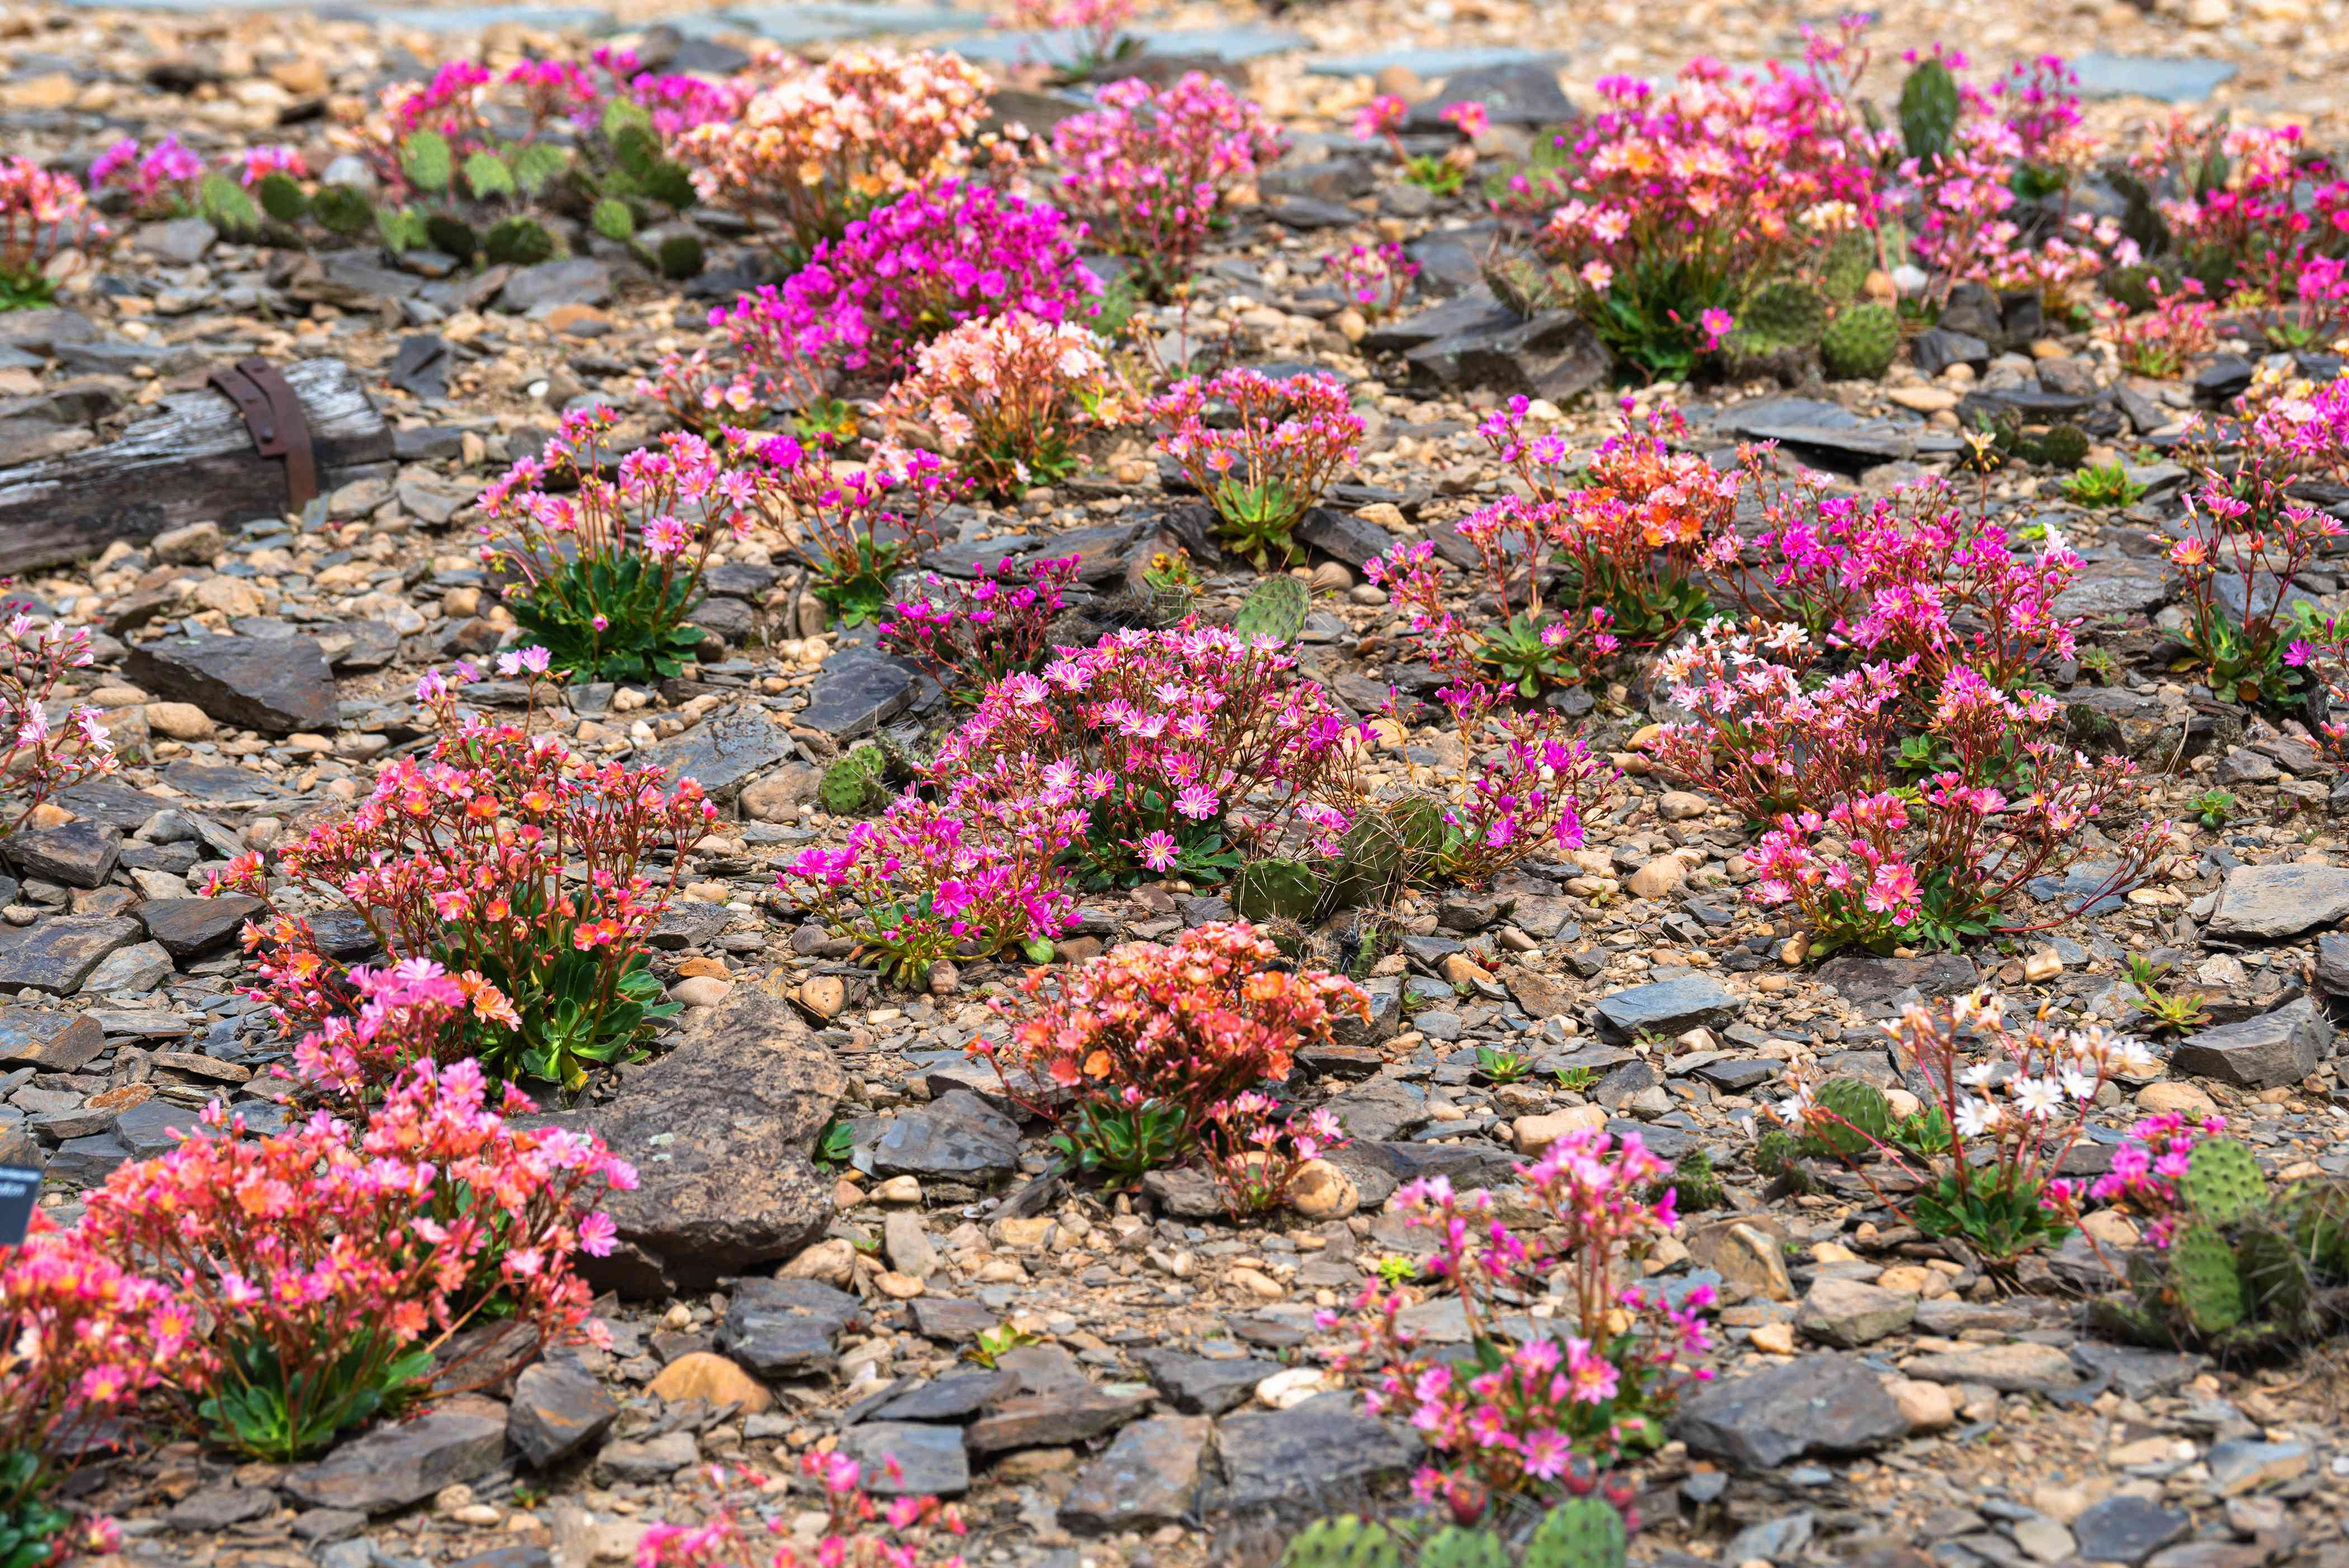 Rainbow lewisia plants with pink and orange flowers clustered between rocks and pebbles